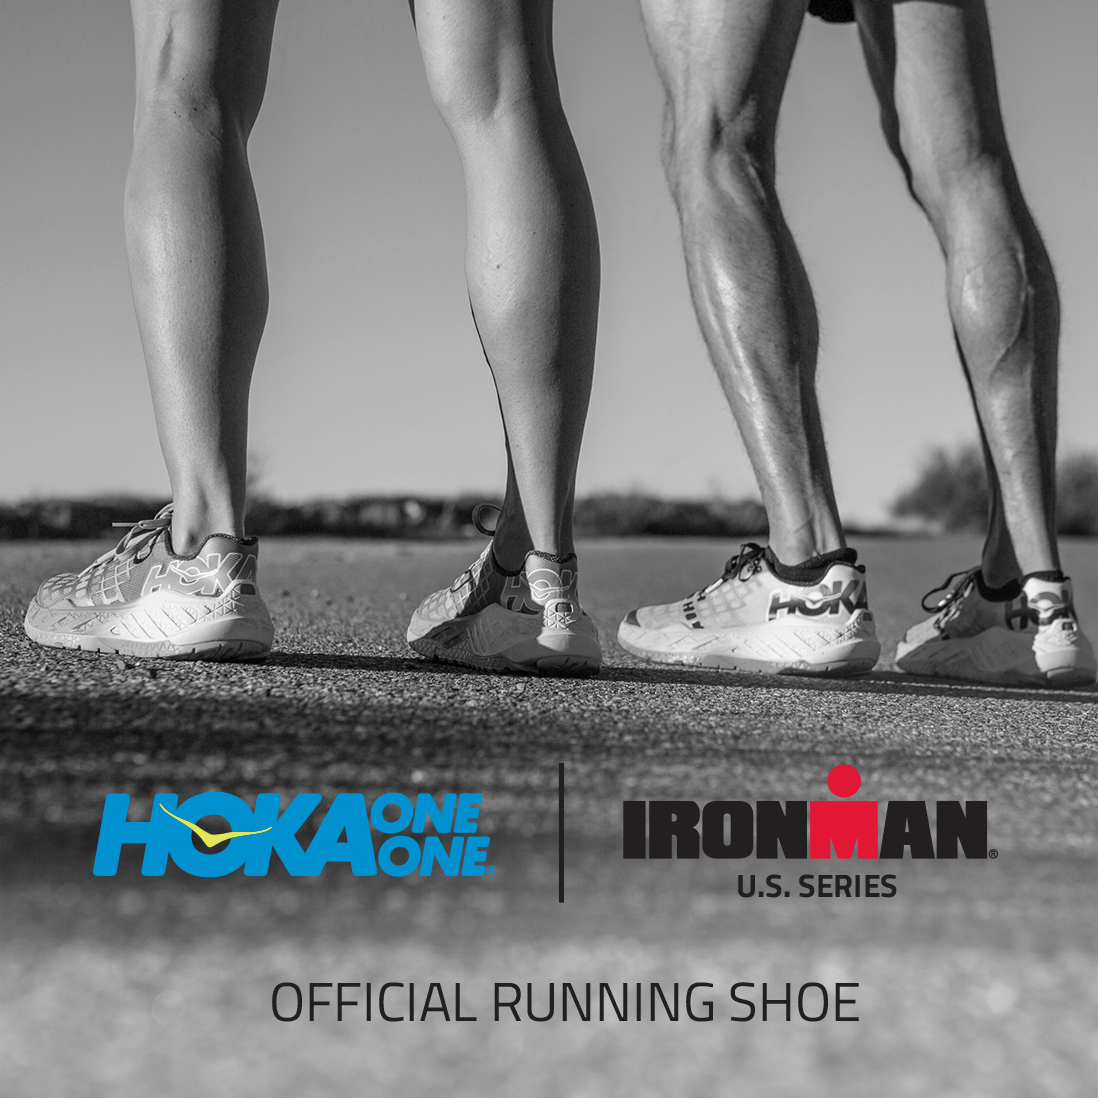 HOKA ONE ONE is official shoe of